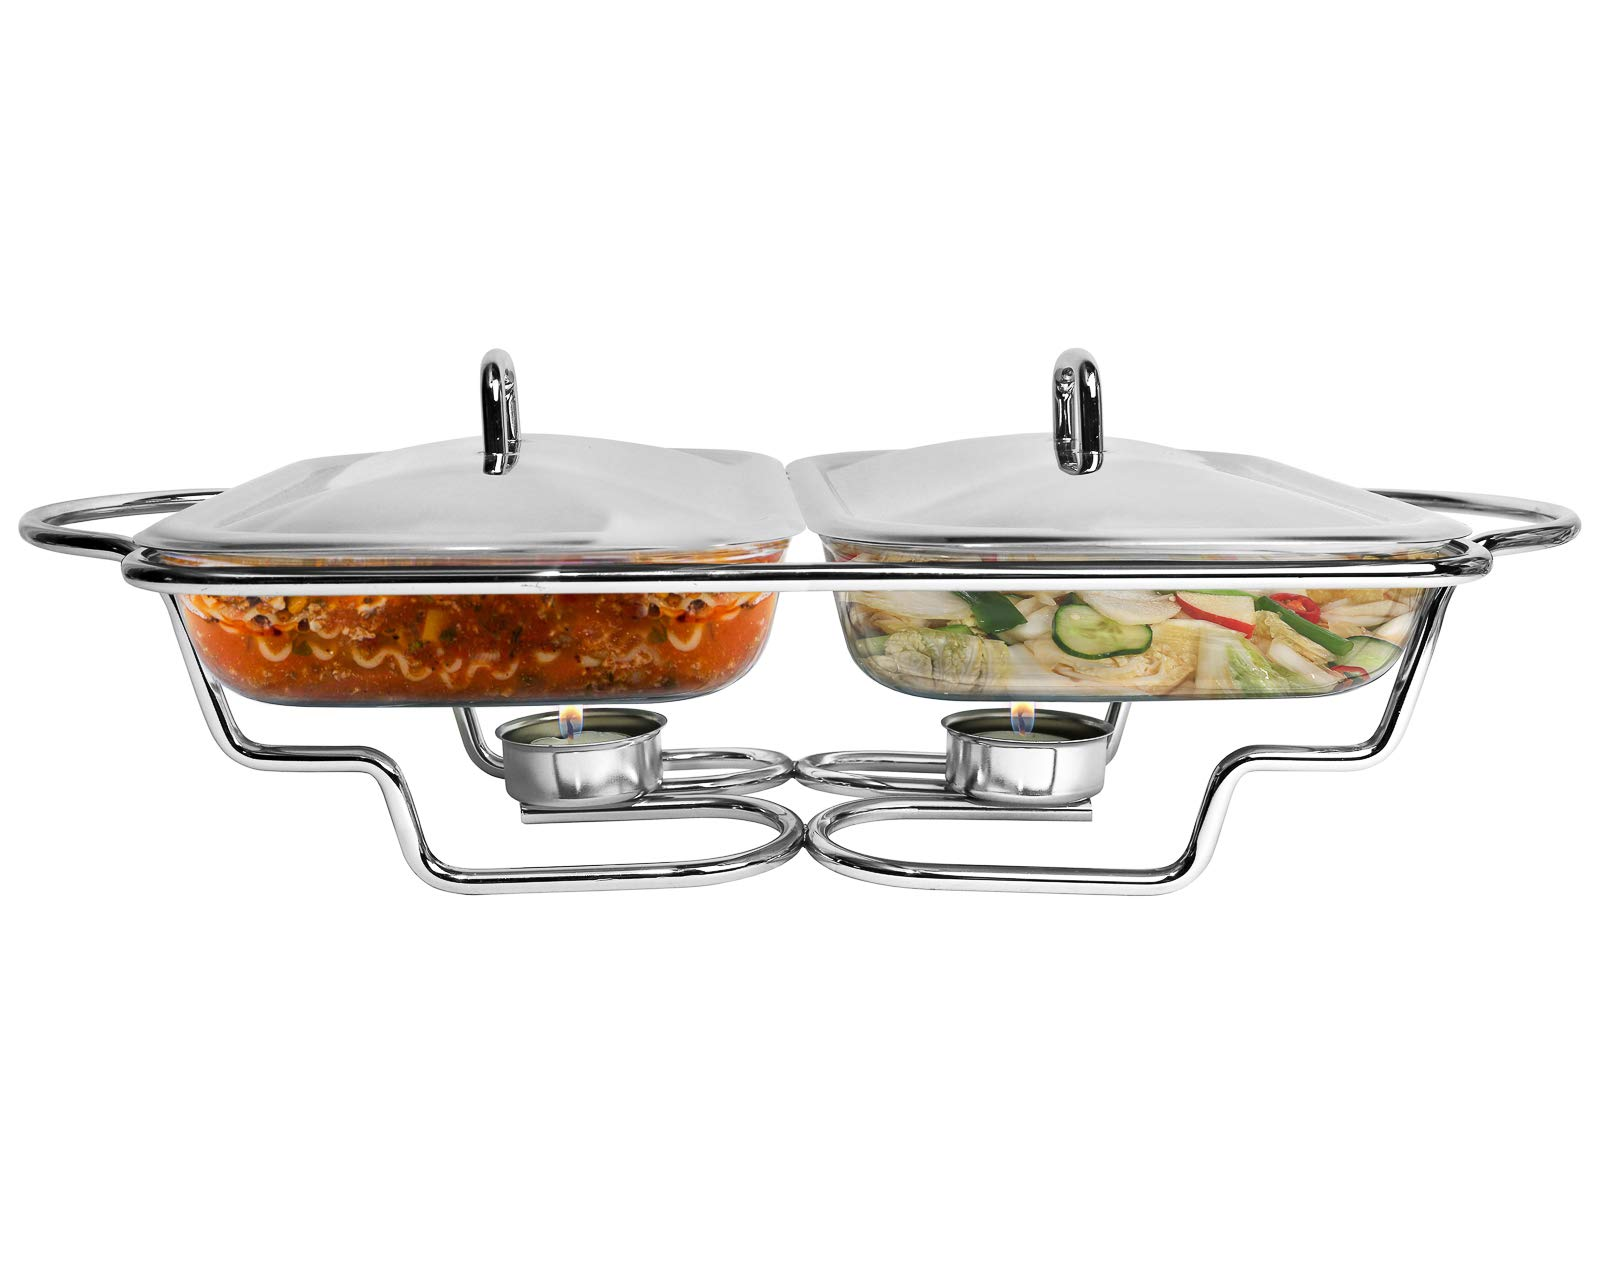 Galashield Buffet Server and Warming Tray Stainless Steel with 2 Glass Dishes Food Warmer Chafing (1.5-Quart Each tray)